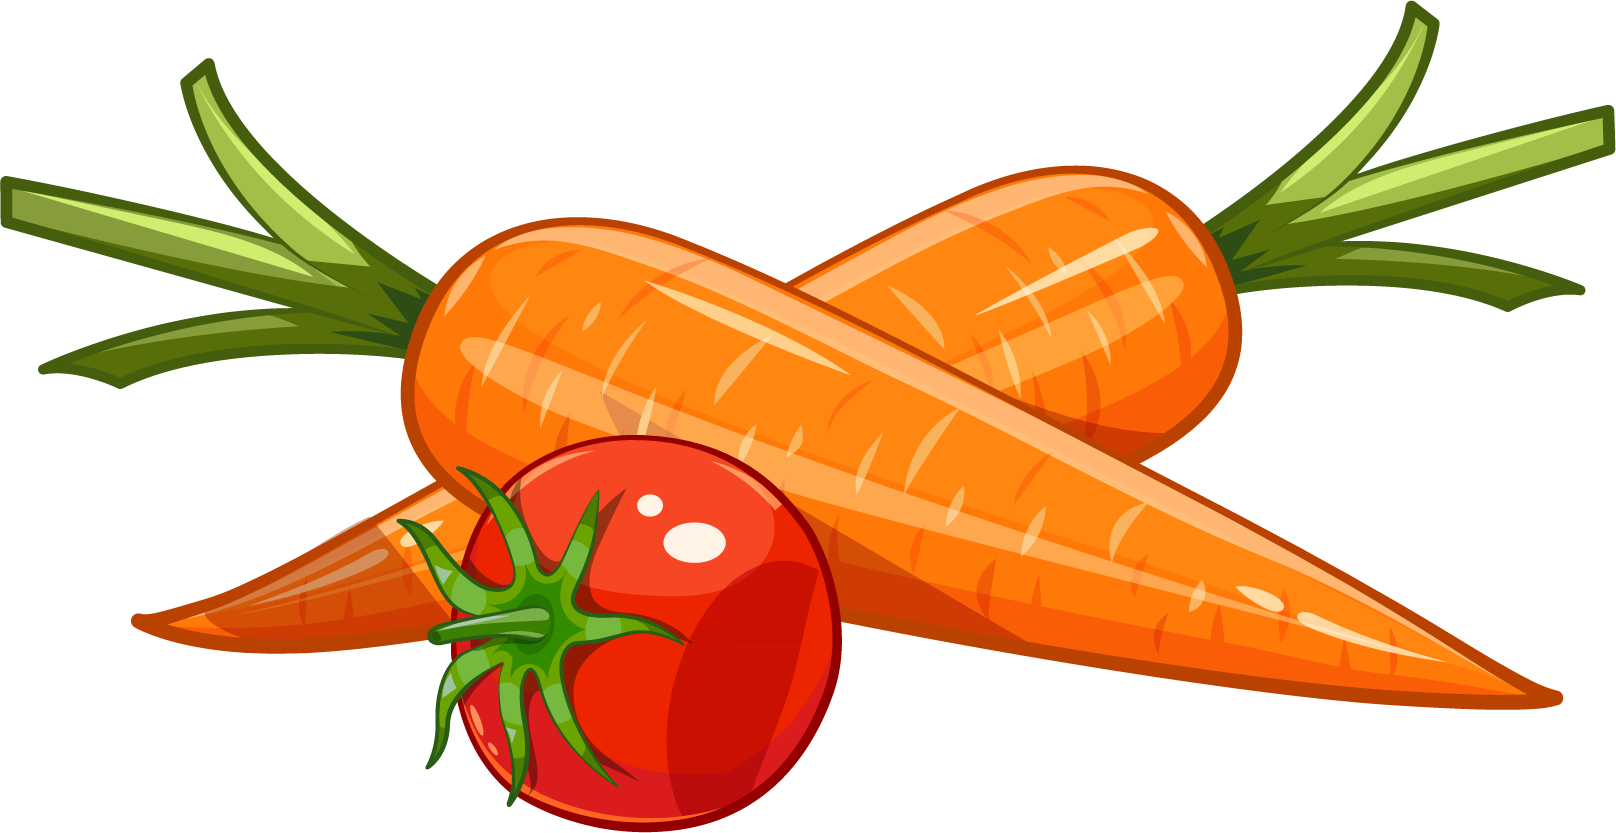 Foods clipart carrot. Drawing royalty free illustration